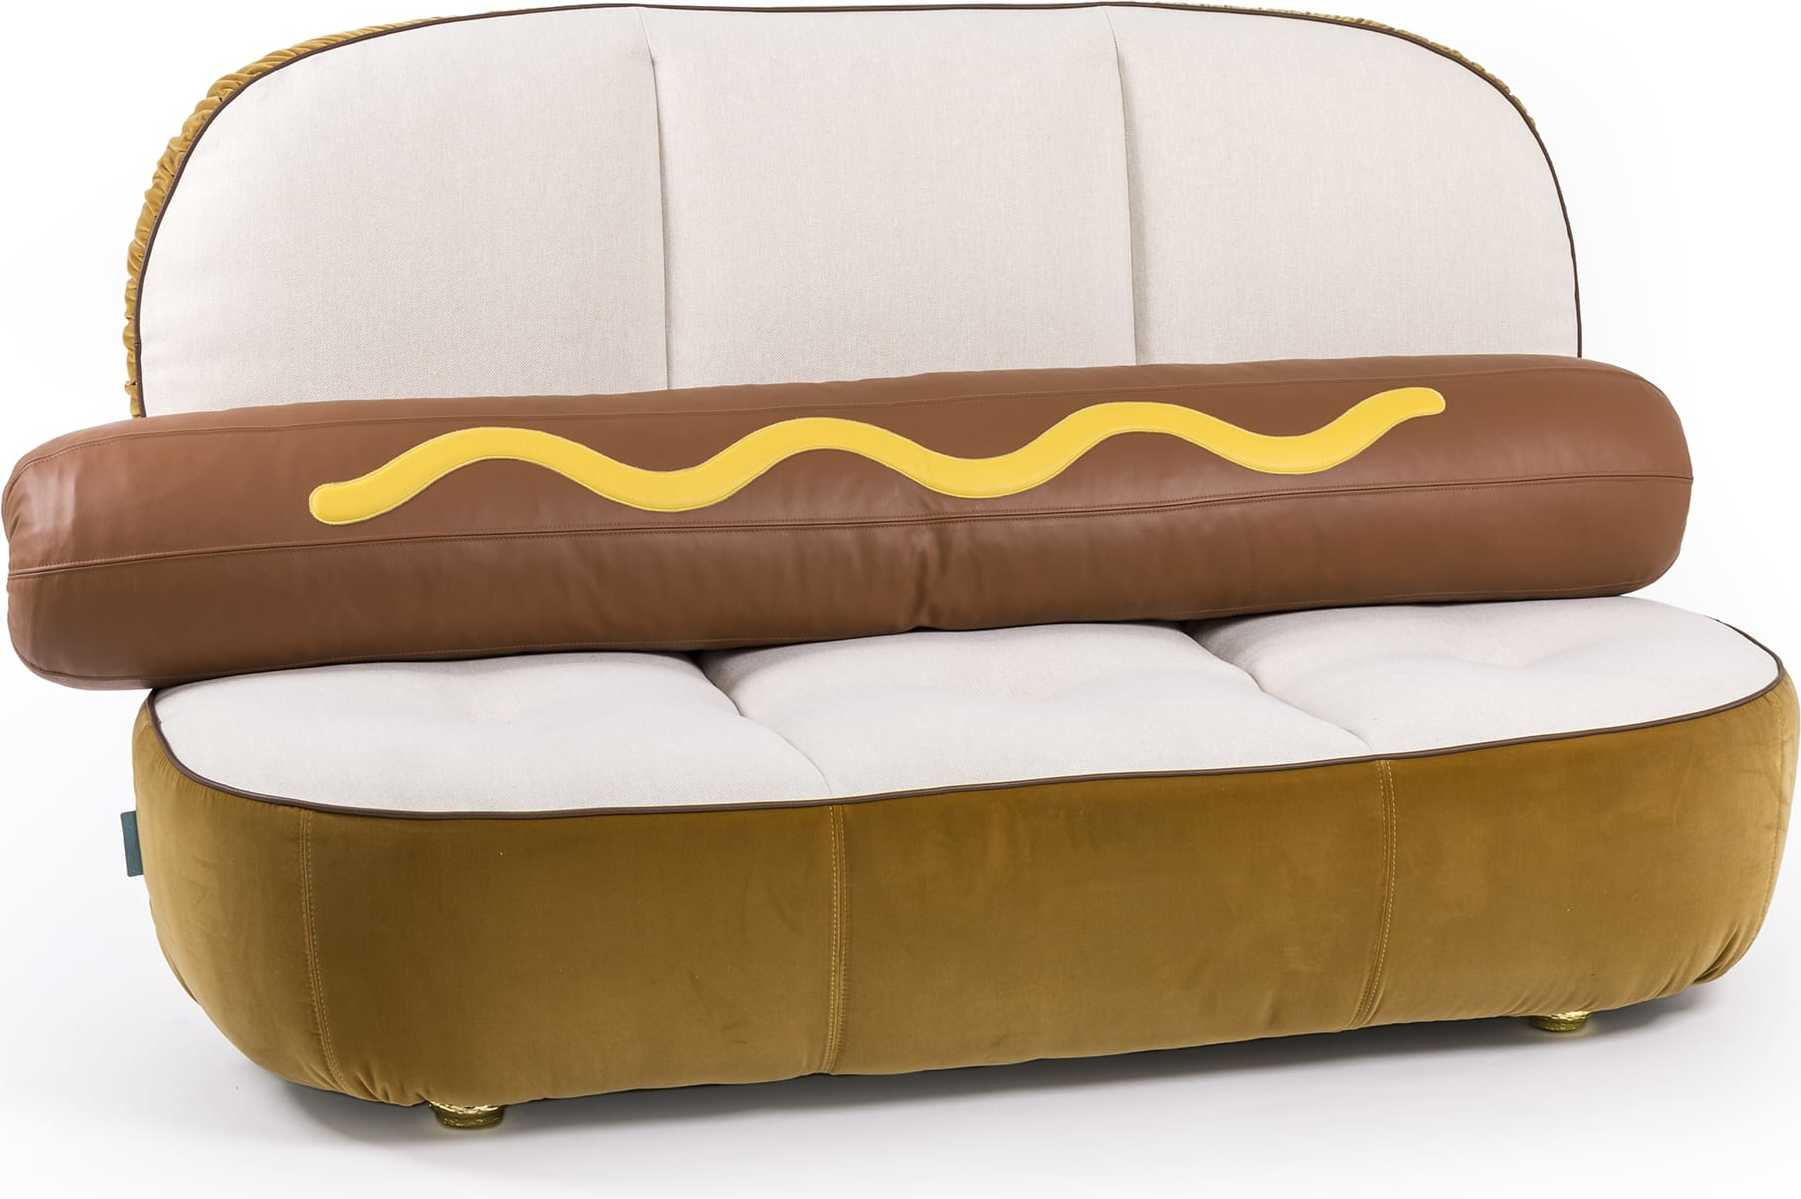 Sofa Hot Dog bez poduszek